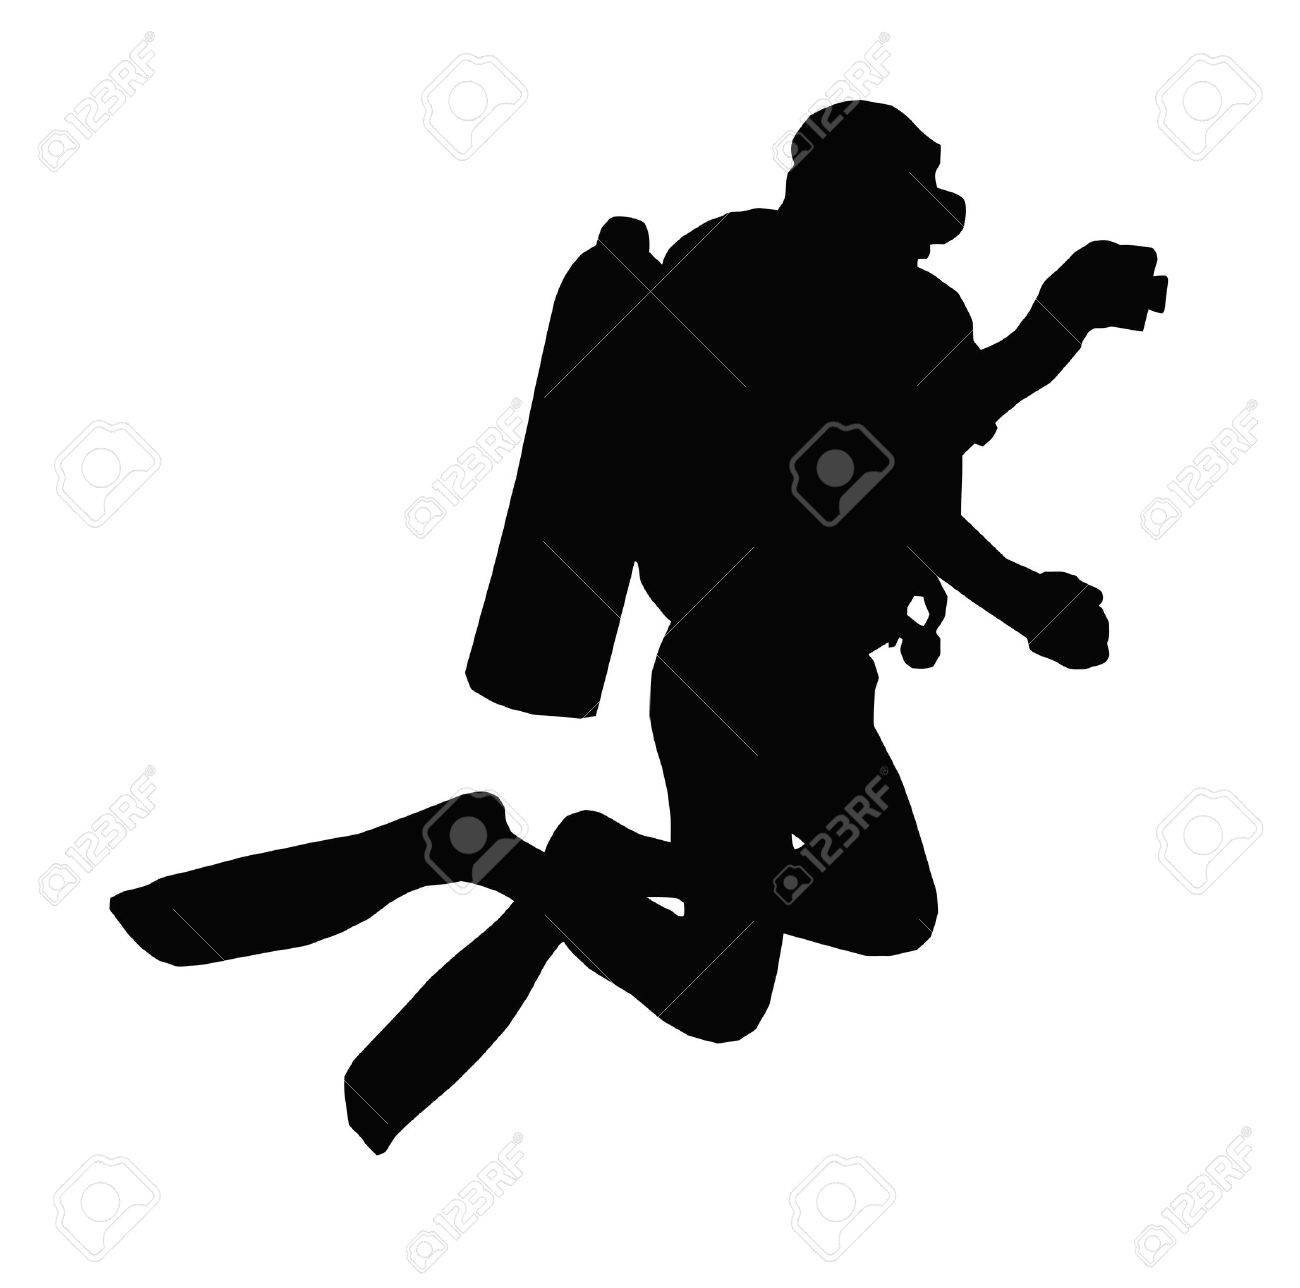 Sport Silhouette - Scuba Diver Taking Under Water Picture Stock Vector - 11058131